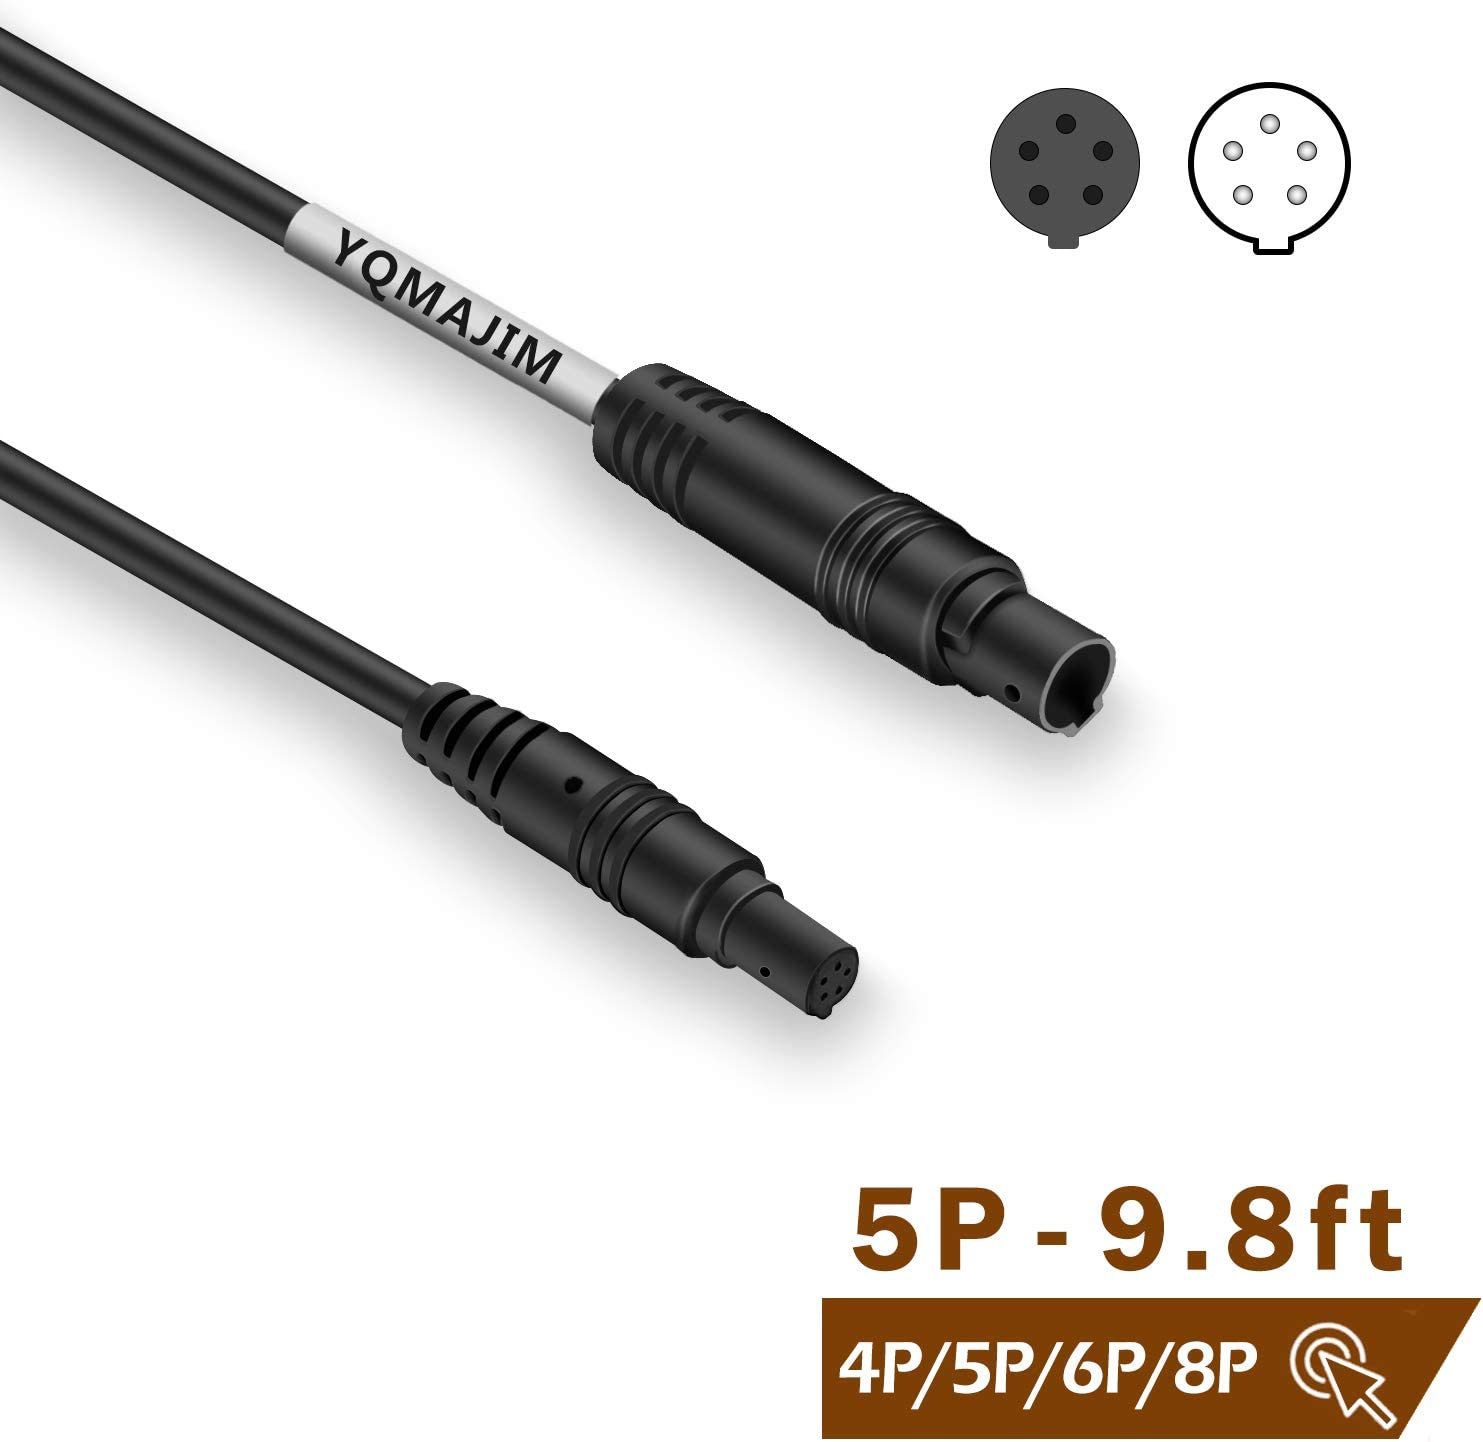 5Pin to 2.5mm Jack Cable Connector Video Extension Cable 9M//29.5FT DVR Video Cable for Backup Camera Mirror Backup Camera Cable